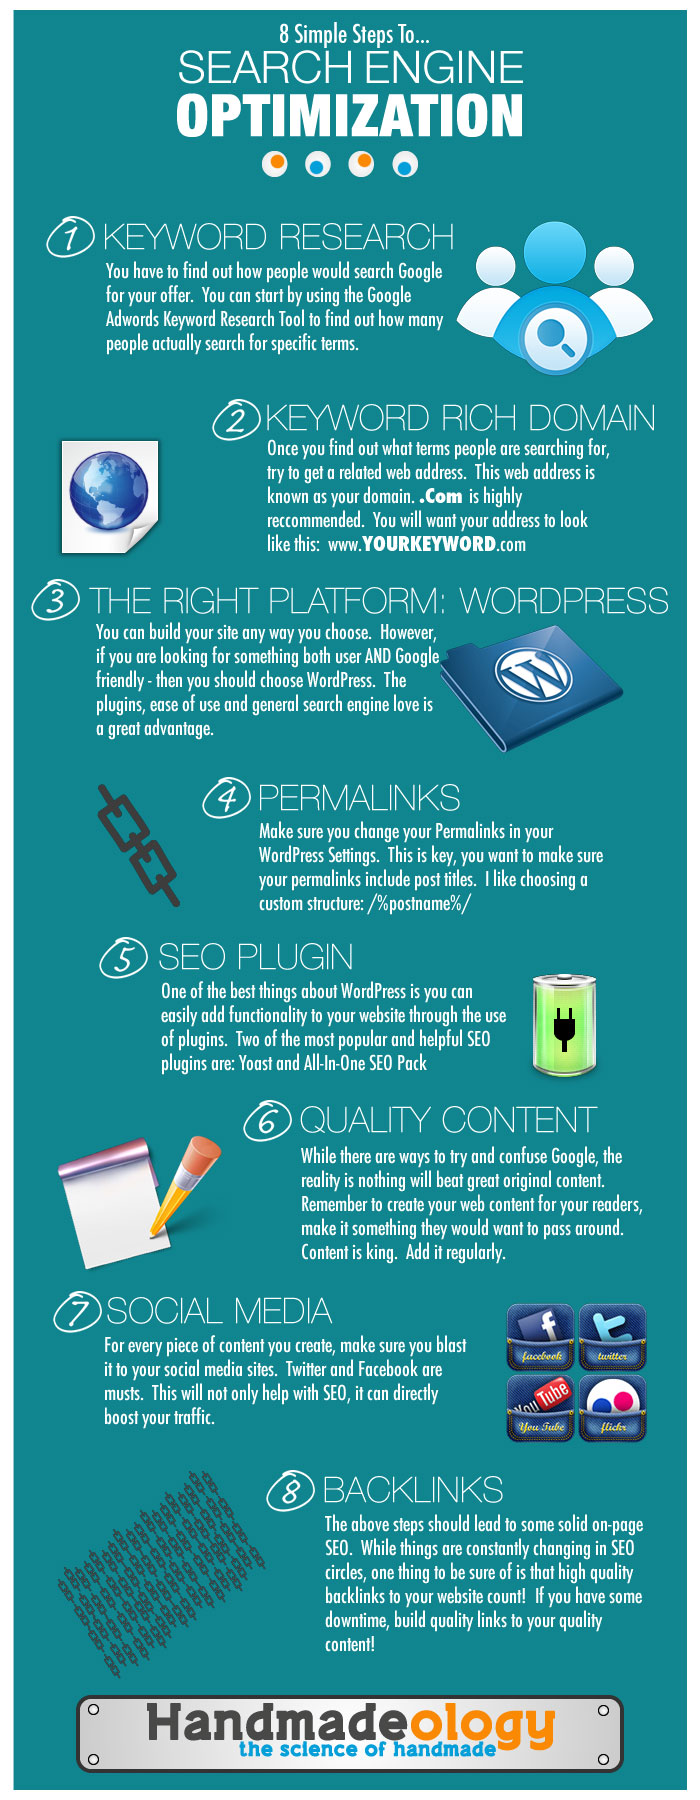 image for search engine optimization